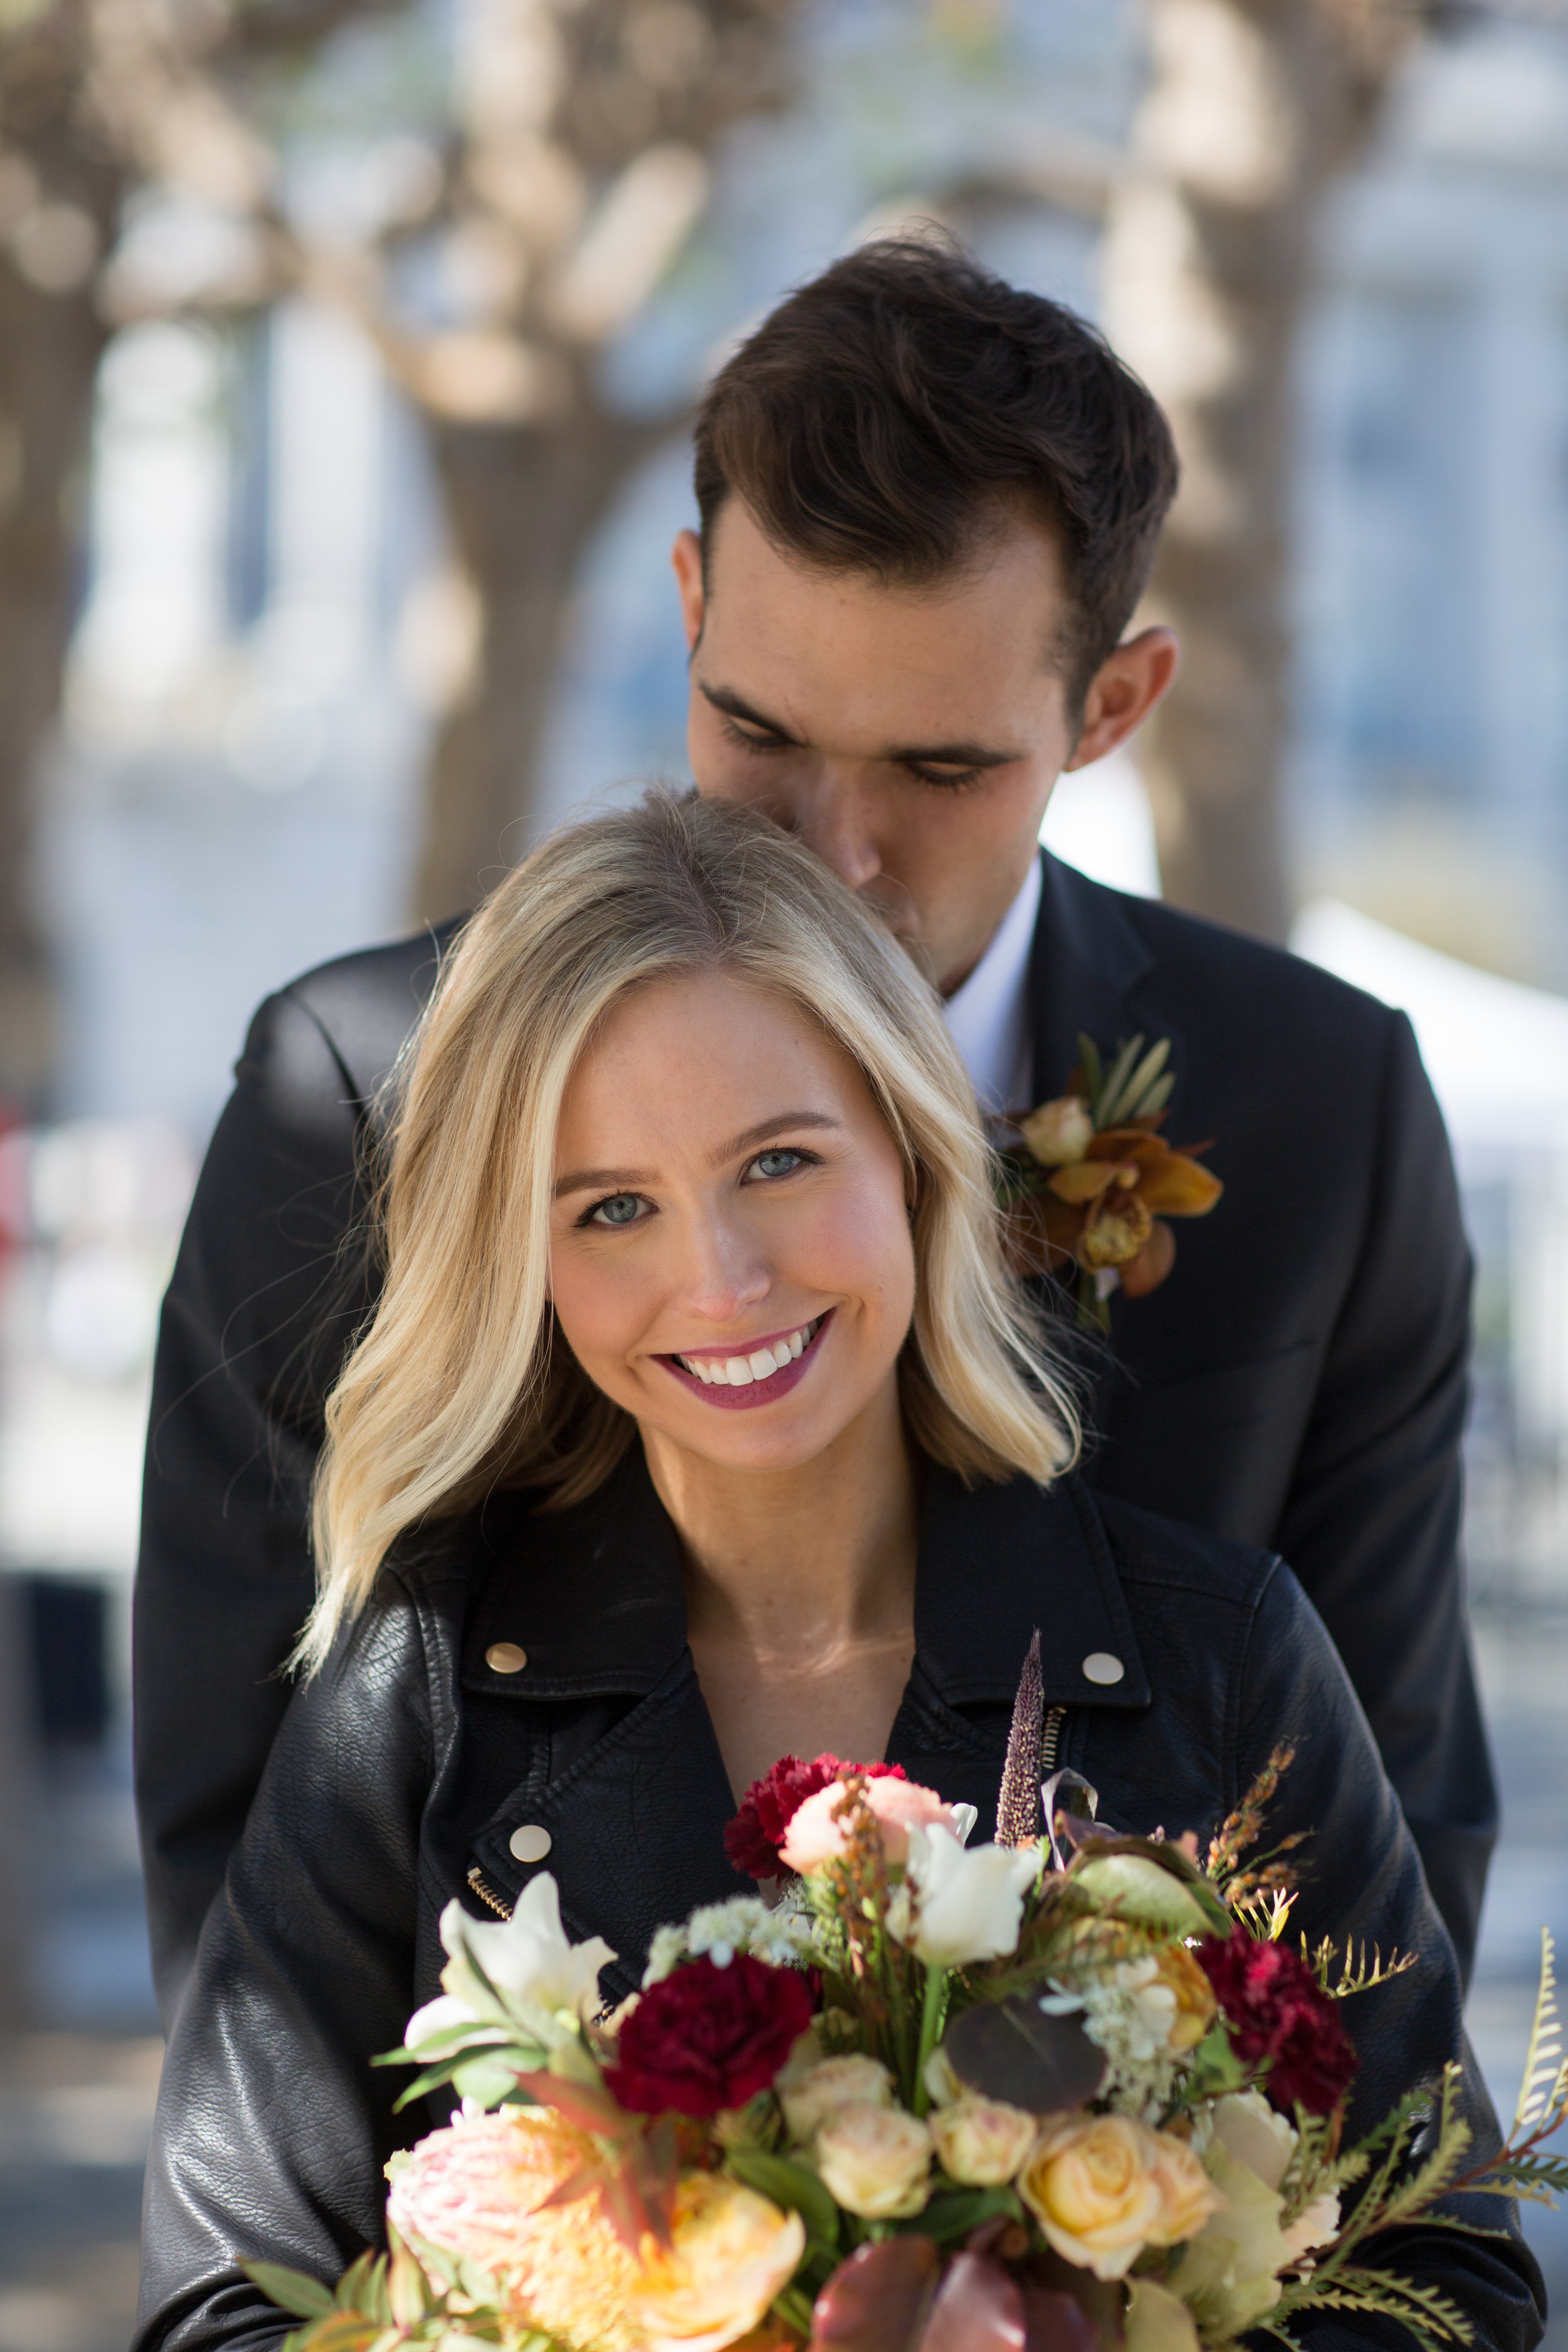 Kenzi & Chris-154.jpg